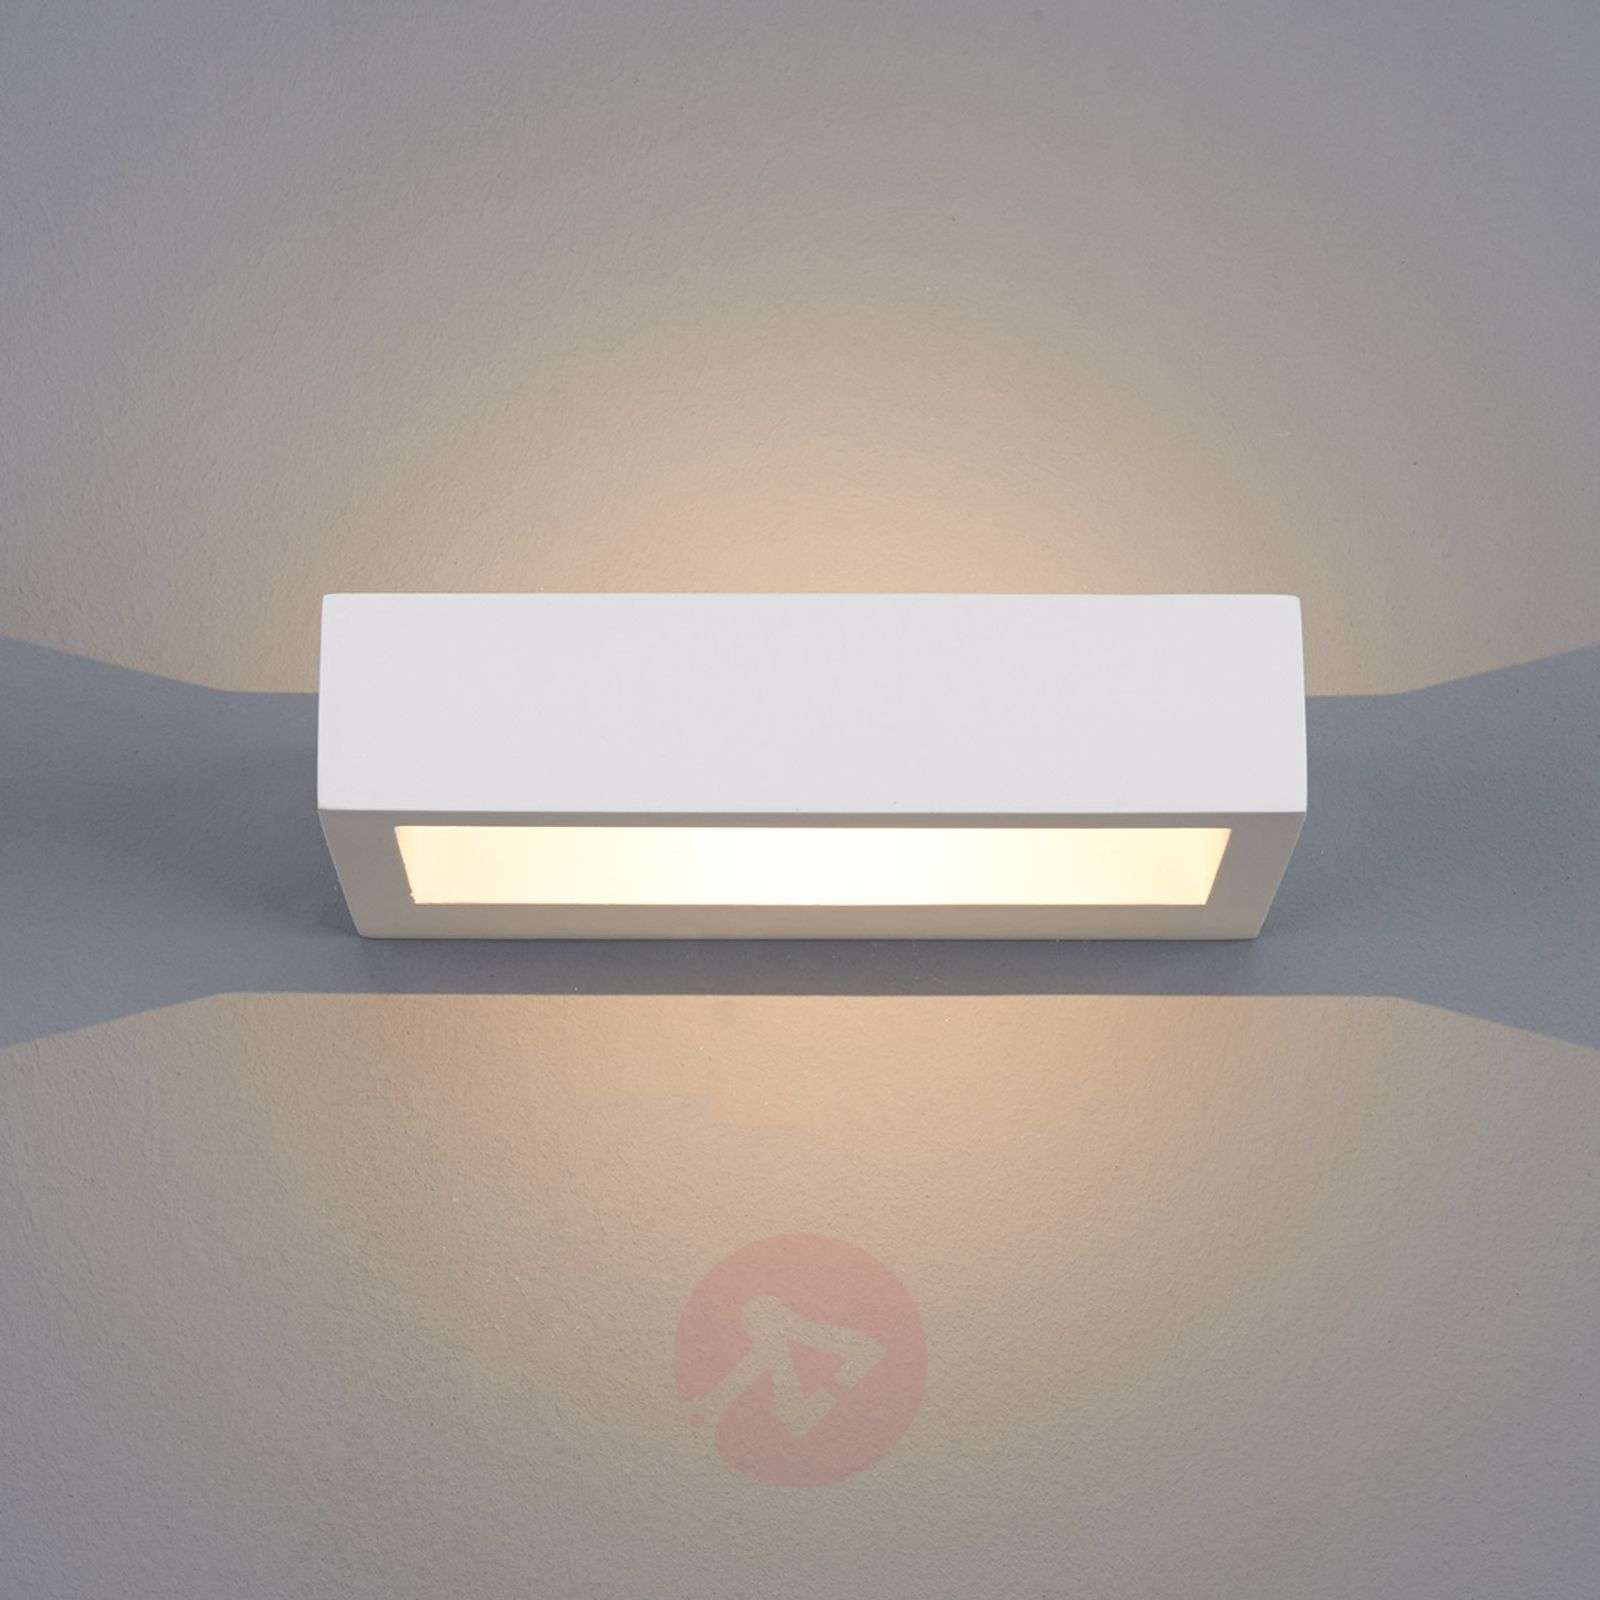 Acquista applique da parete julika in gesso a led lampade.it